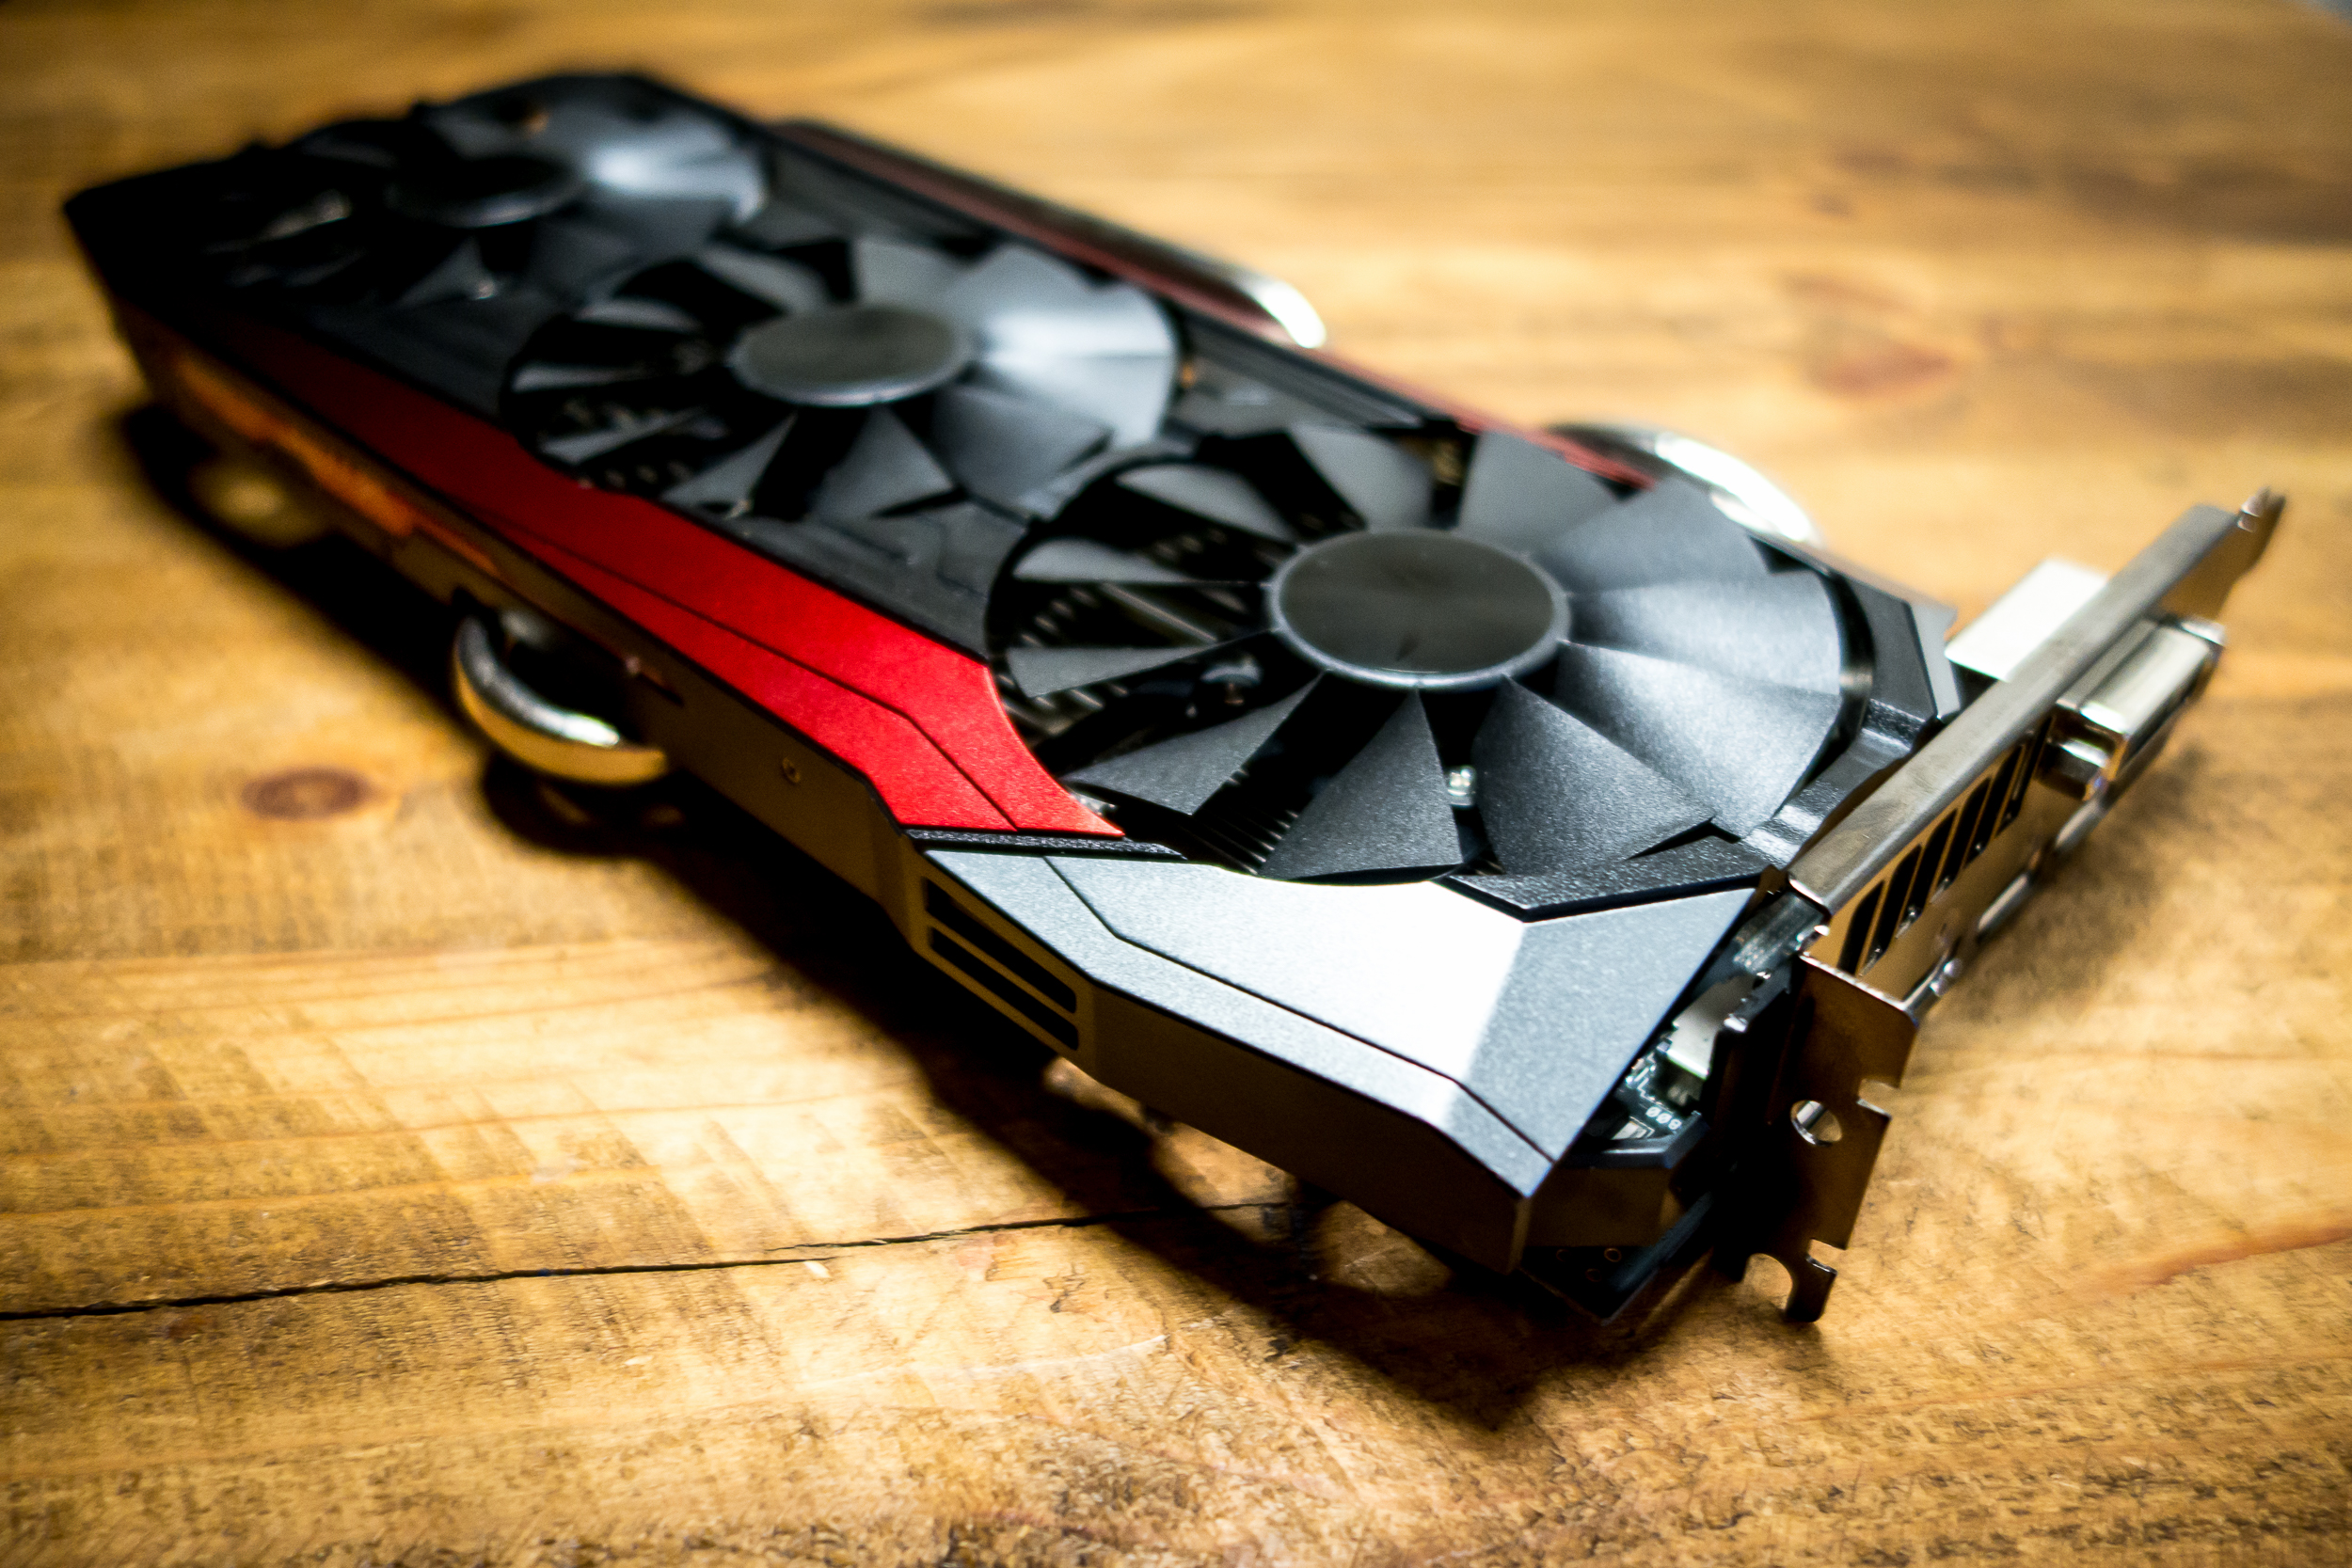 DirectX 12 tested: An early win for AMD and disappointment